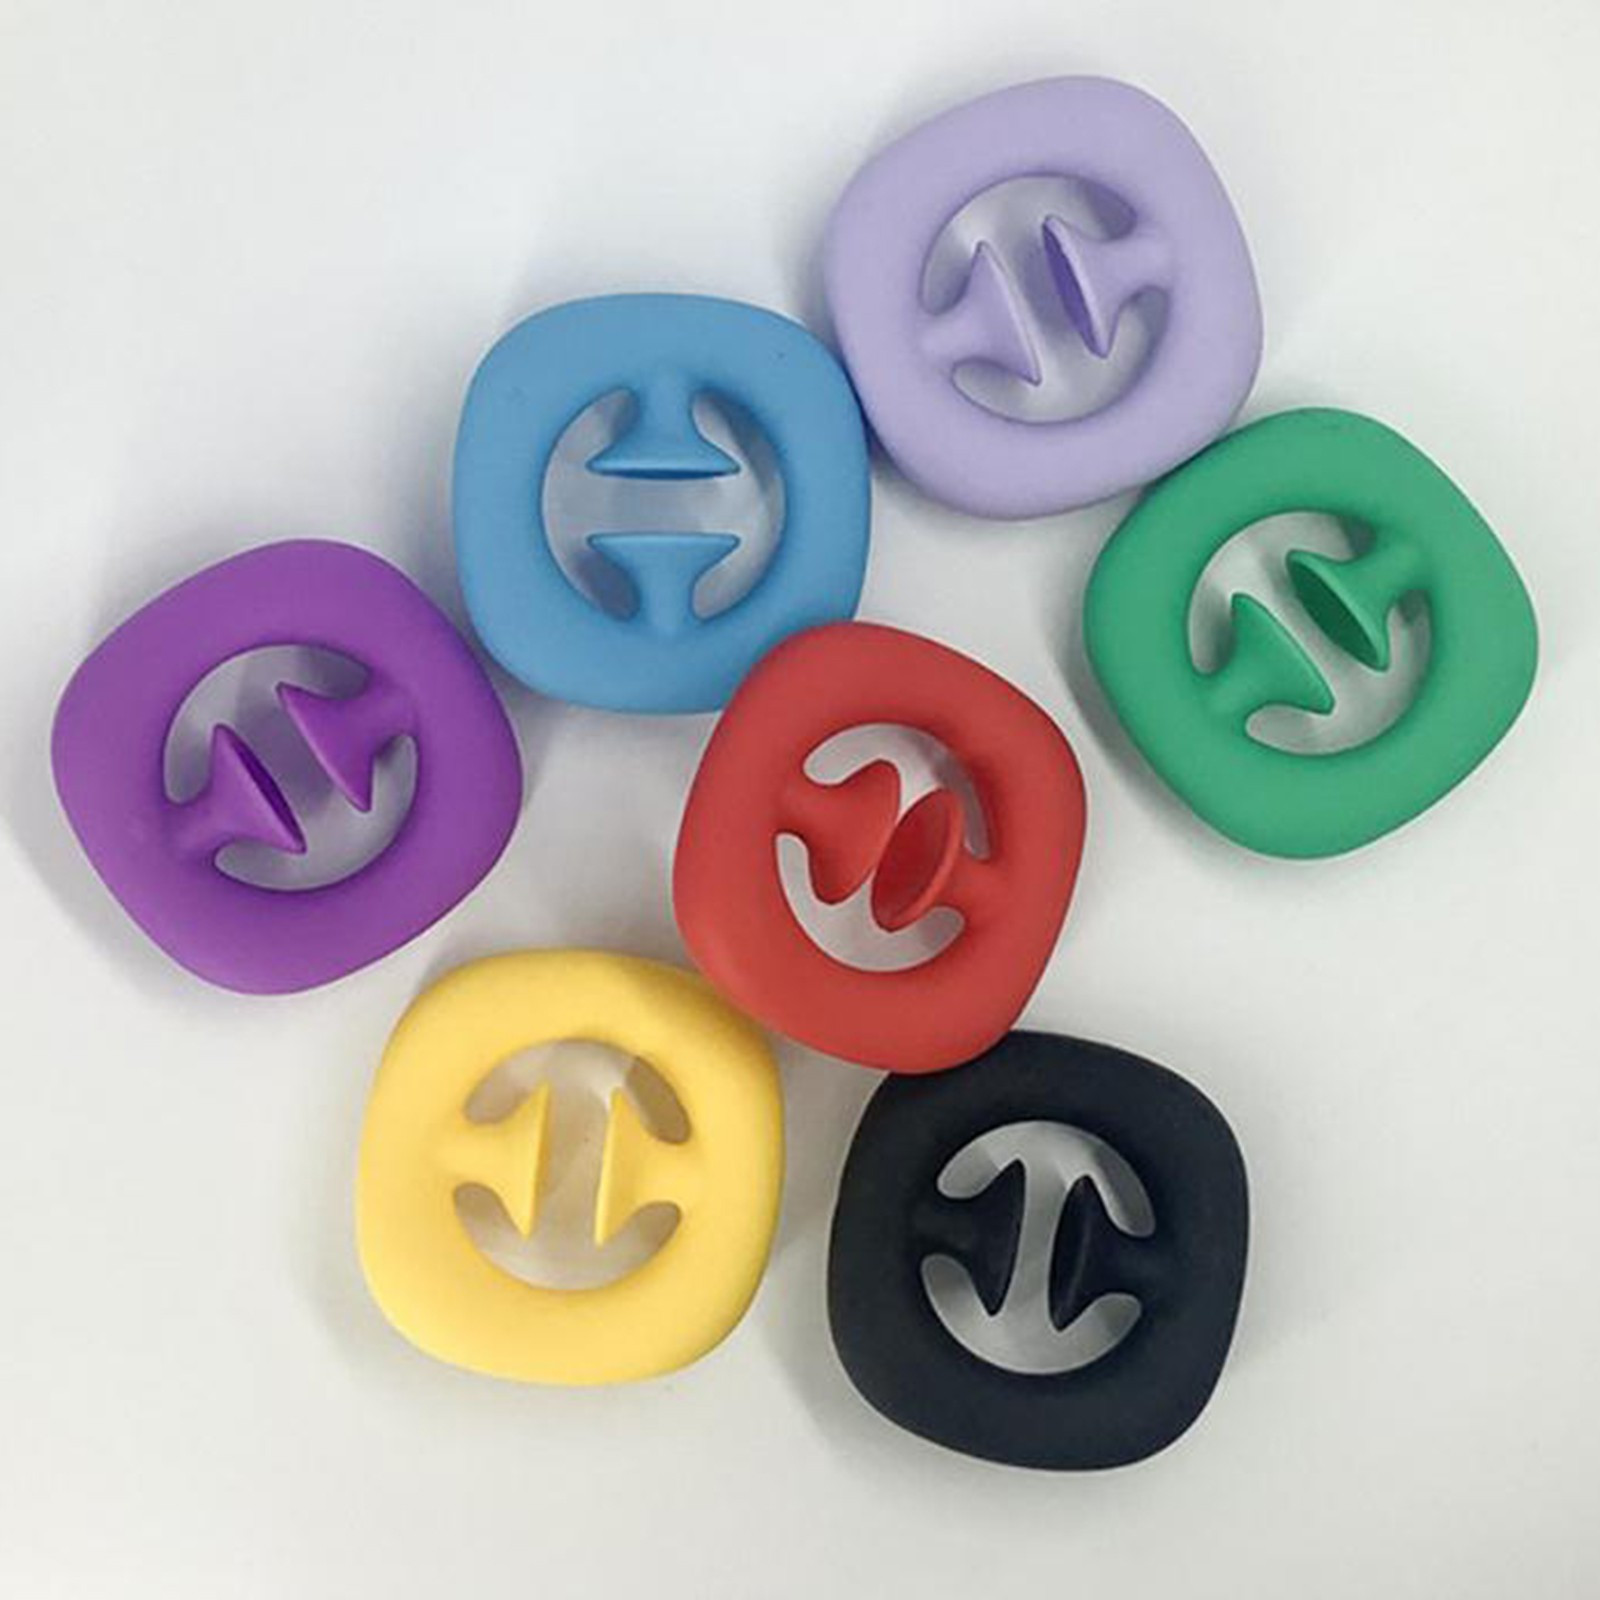 Fidget-Toy Relief-Toys Hand-Grip Finger Extrusion-Sensory Needs-Stress Anxiety Special img4